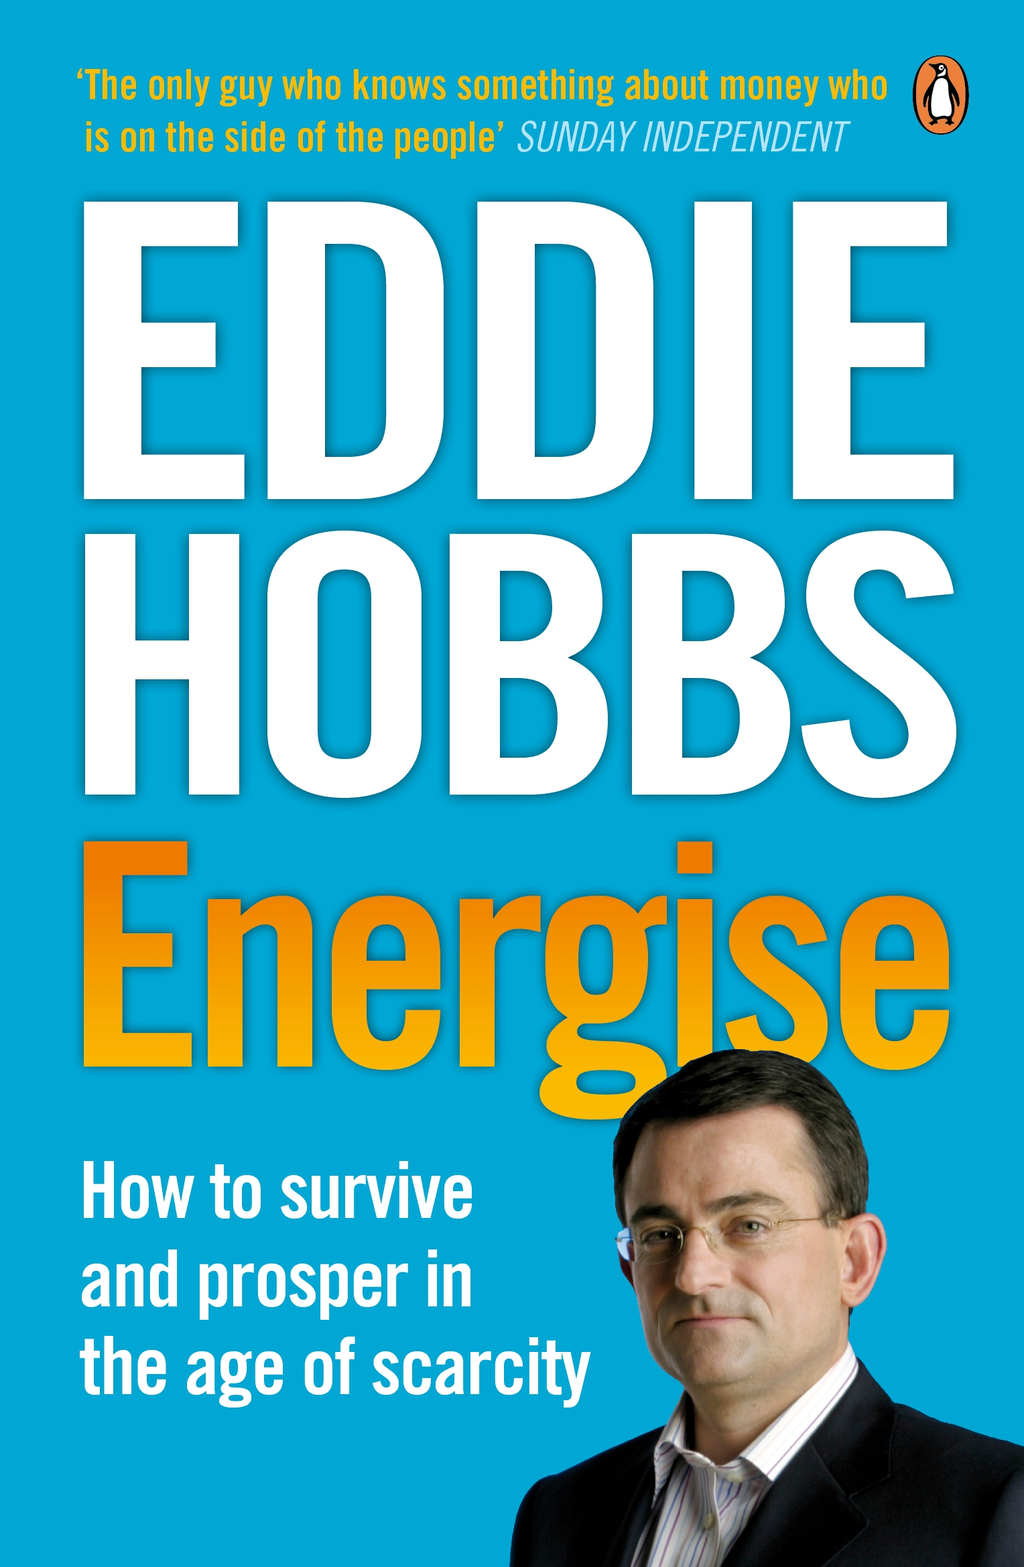 Energise How to survive and prosper in the age of scarcity